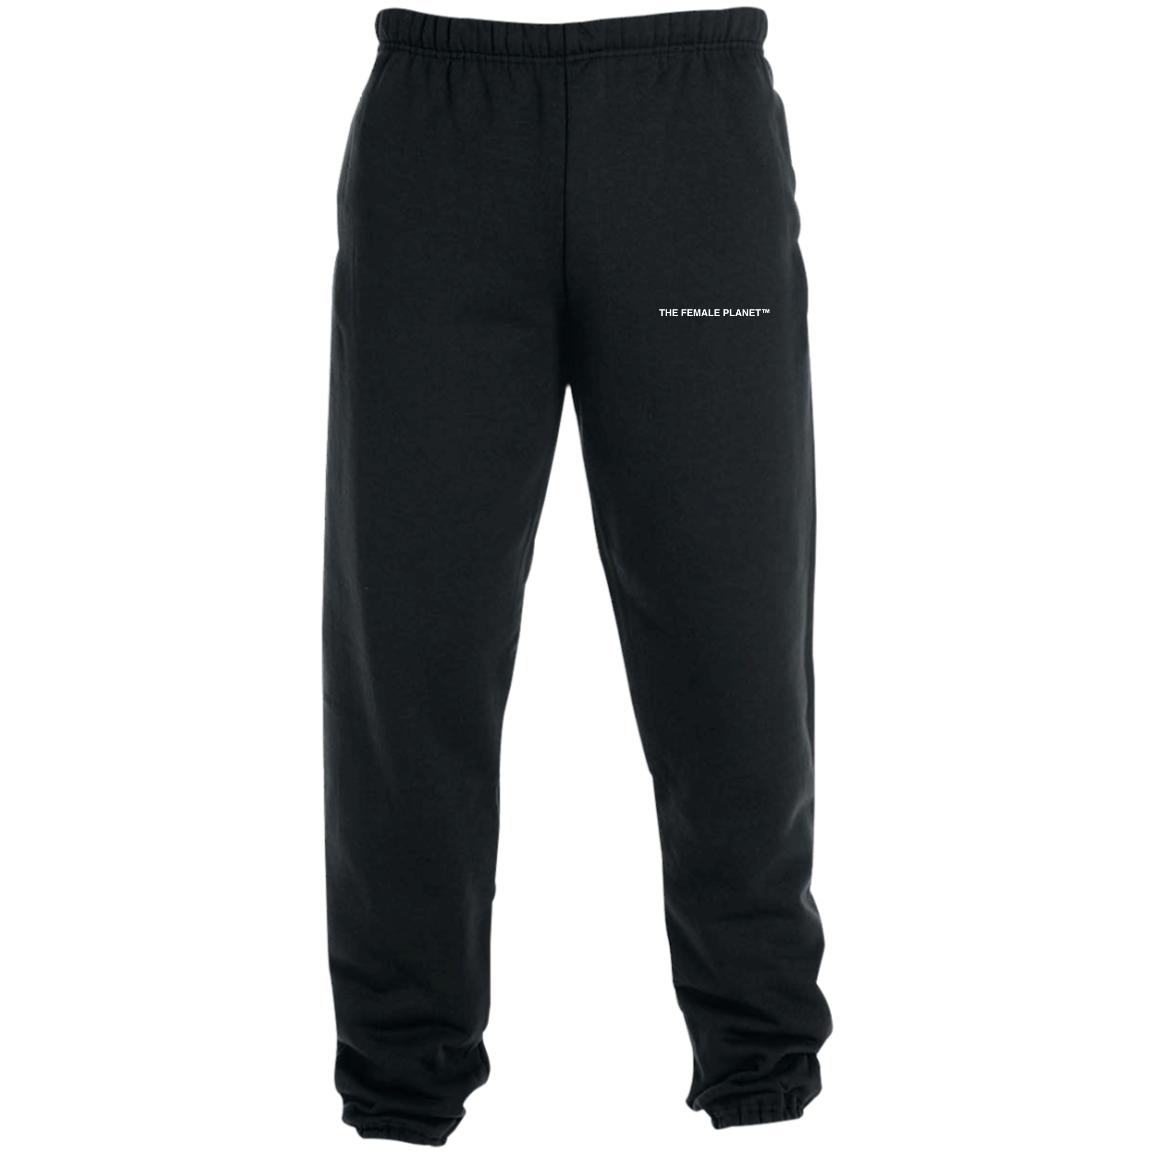 TFP Black Sweatpants